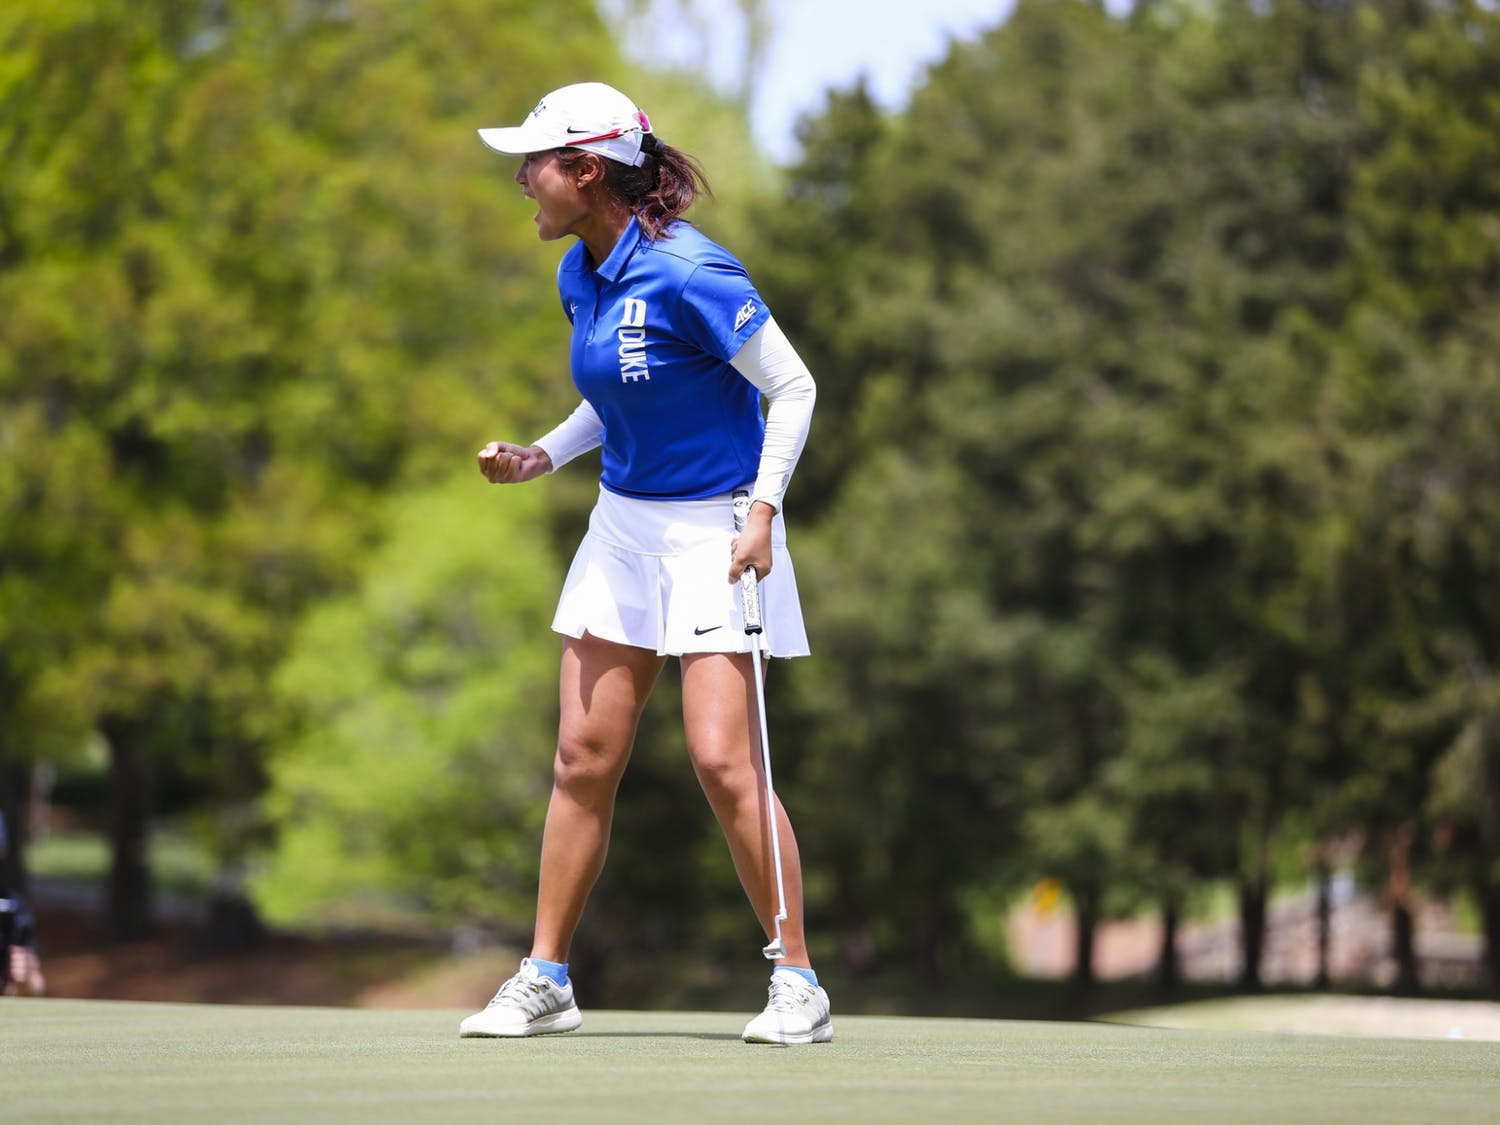 Junior Gina Kim secured the individual ACC title while also sinking the clinching put for the team championship.